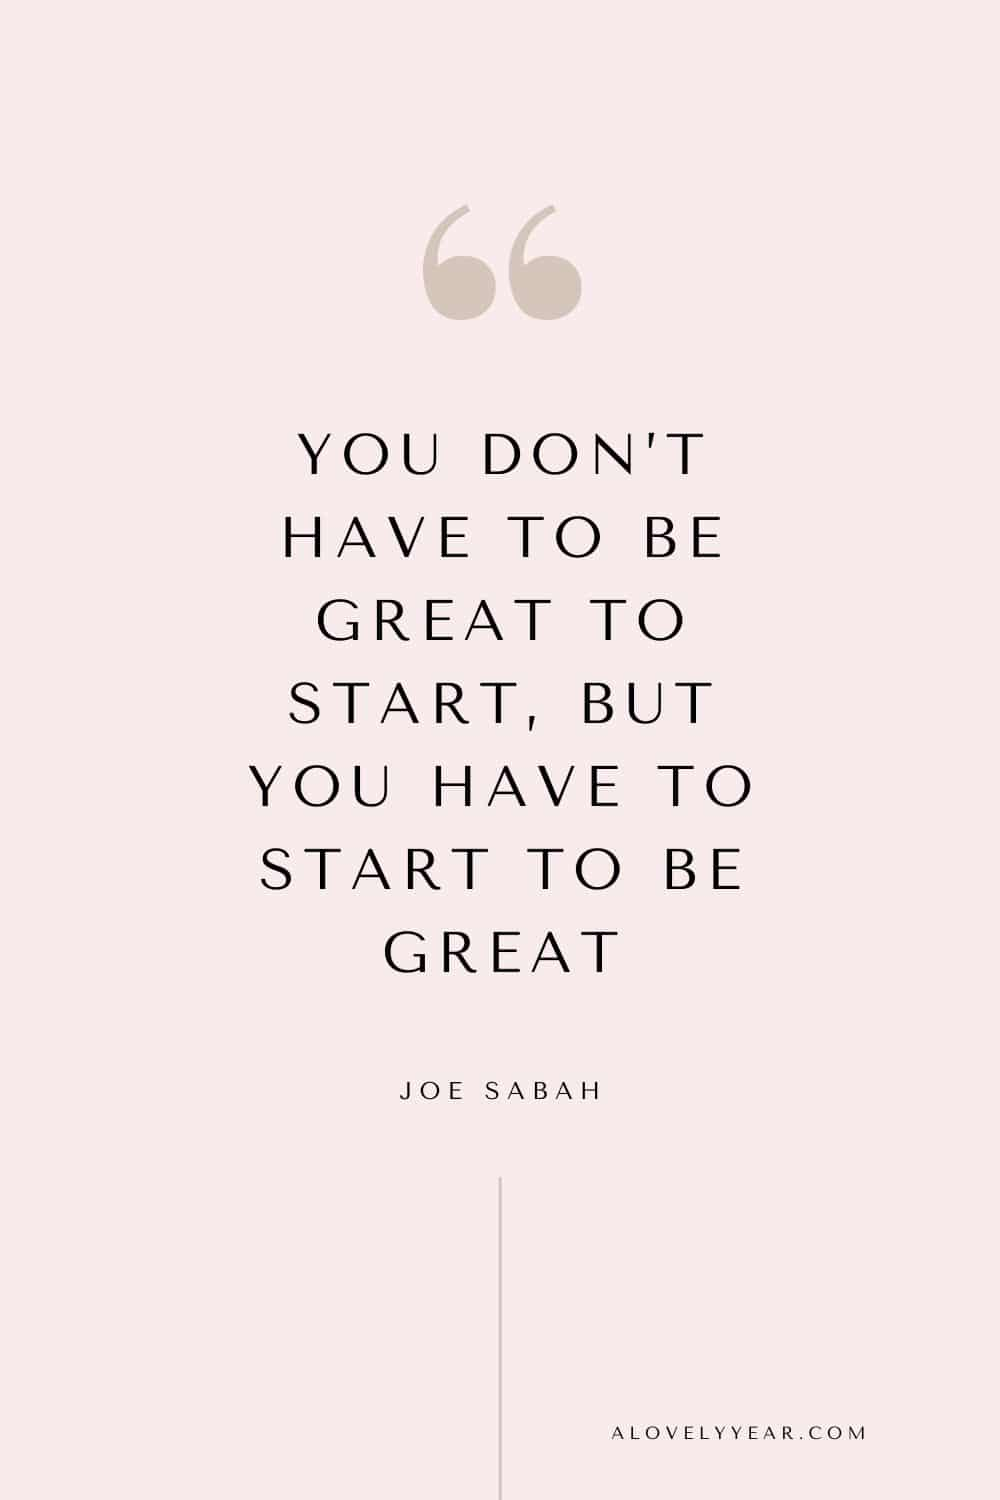 You don't have to be great to start, but you have to start to be great. - Joe Sabah